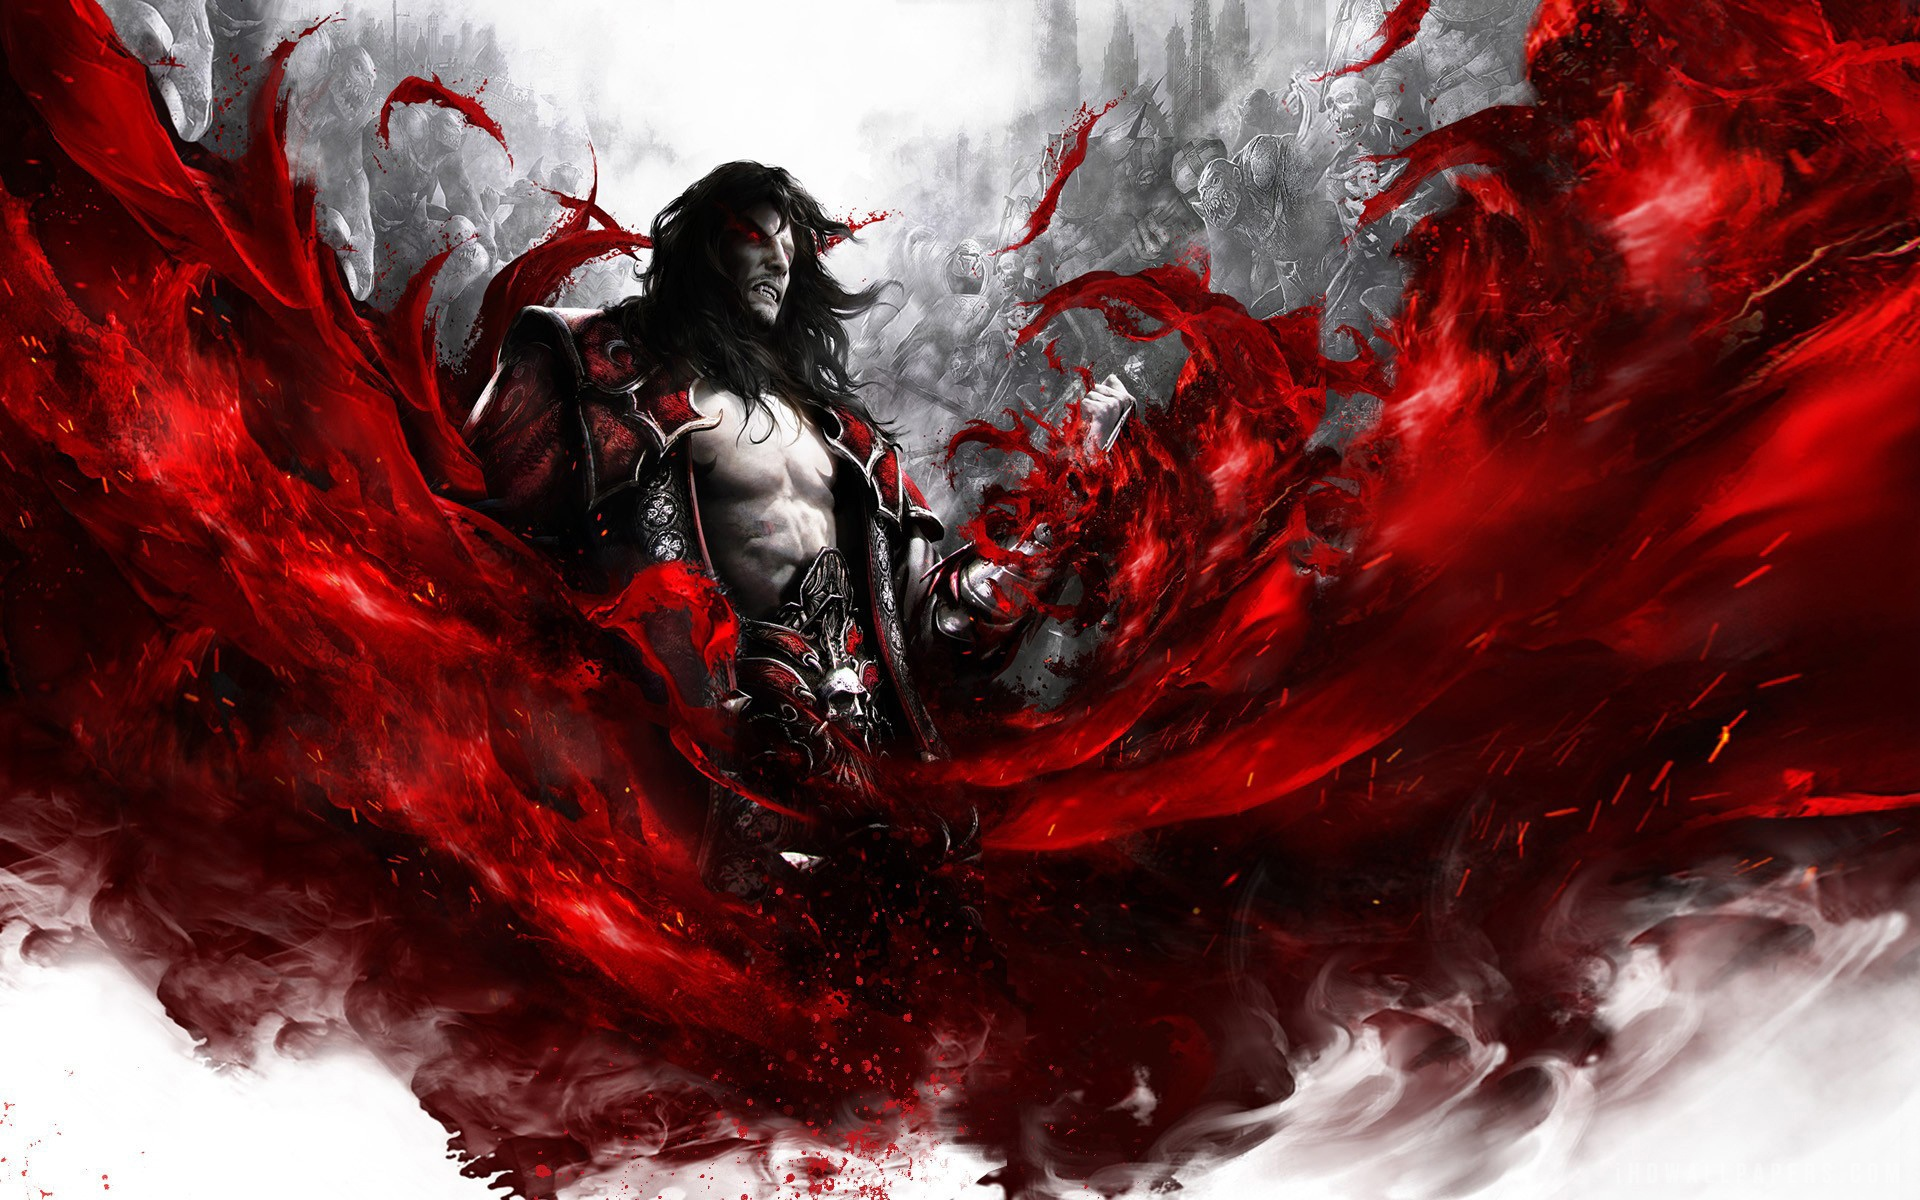 Welcome to Castlevania: Lords of Shadow 2, the thirty-fifth entry in the Castlevania series. This is an open world adventure game and a continuation of the ...